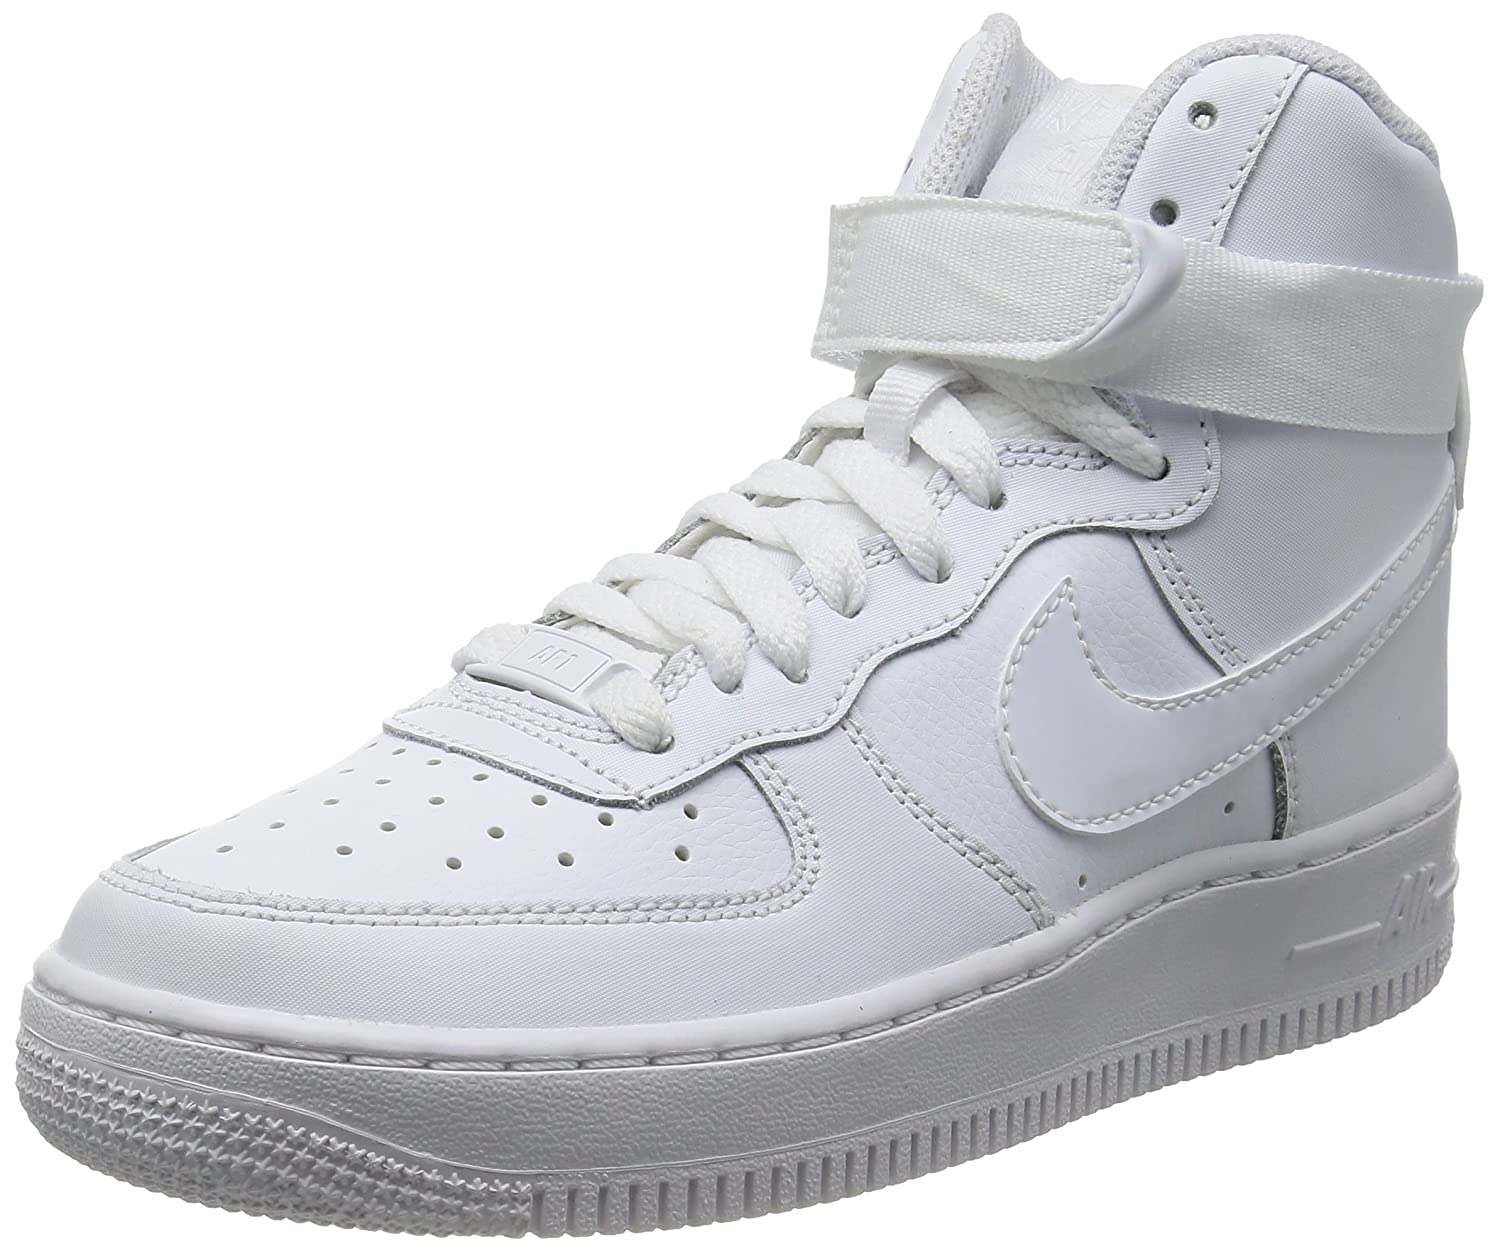 factory price 2ca76 e259c Nike Air Force 1 High (GS) Junior Trainer: Amazon.co.uk ...